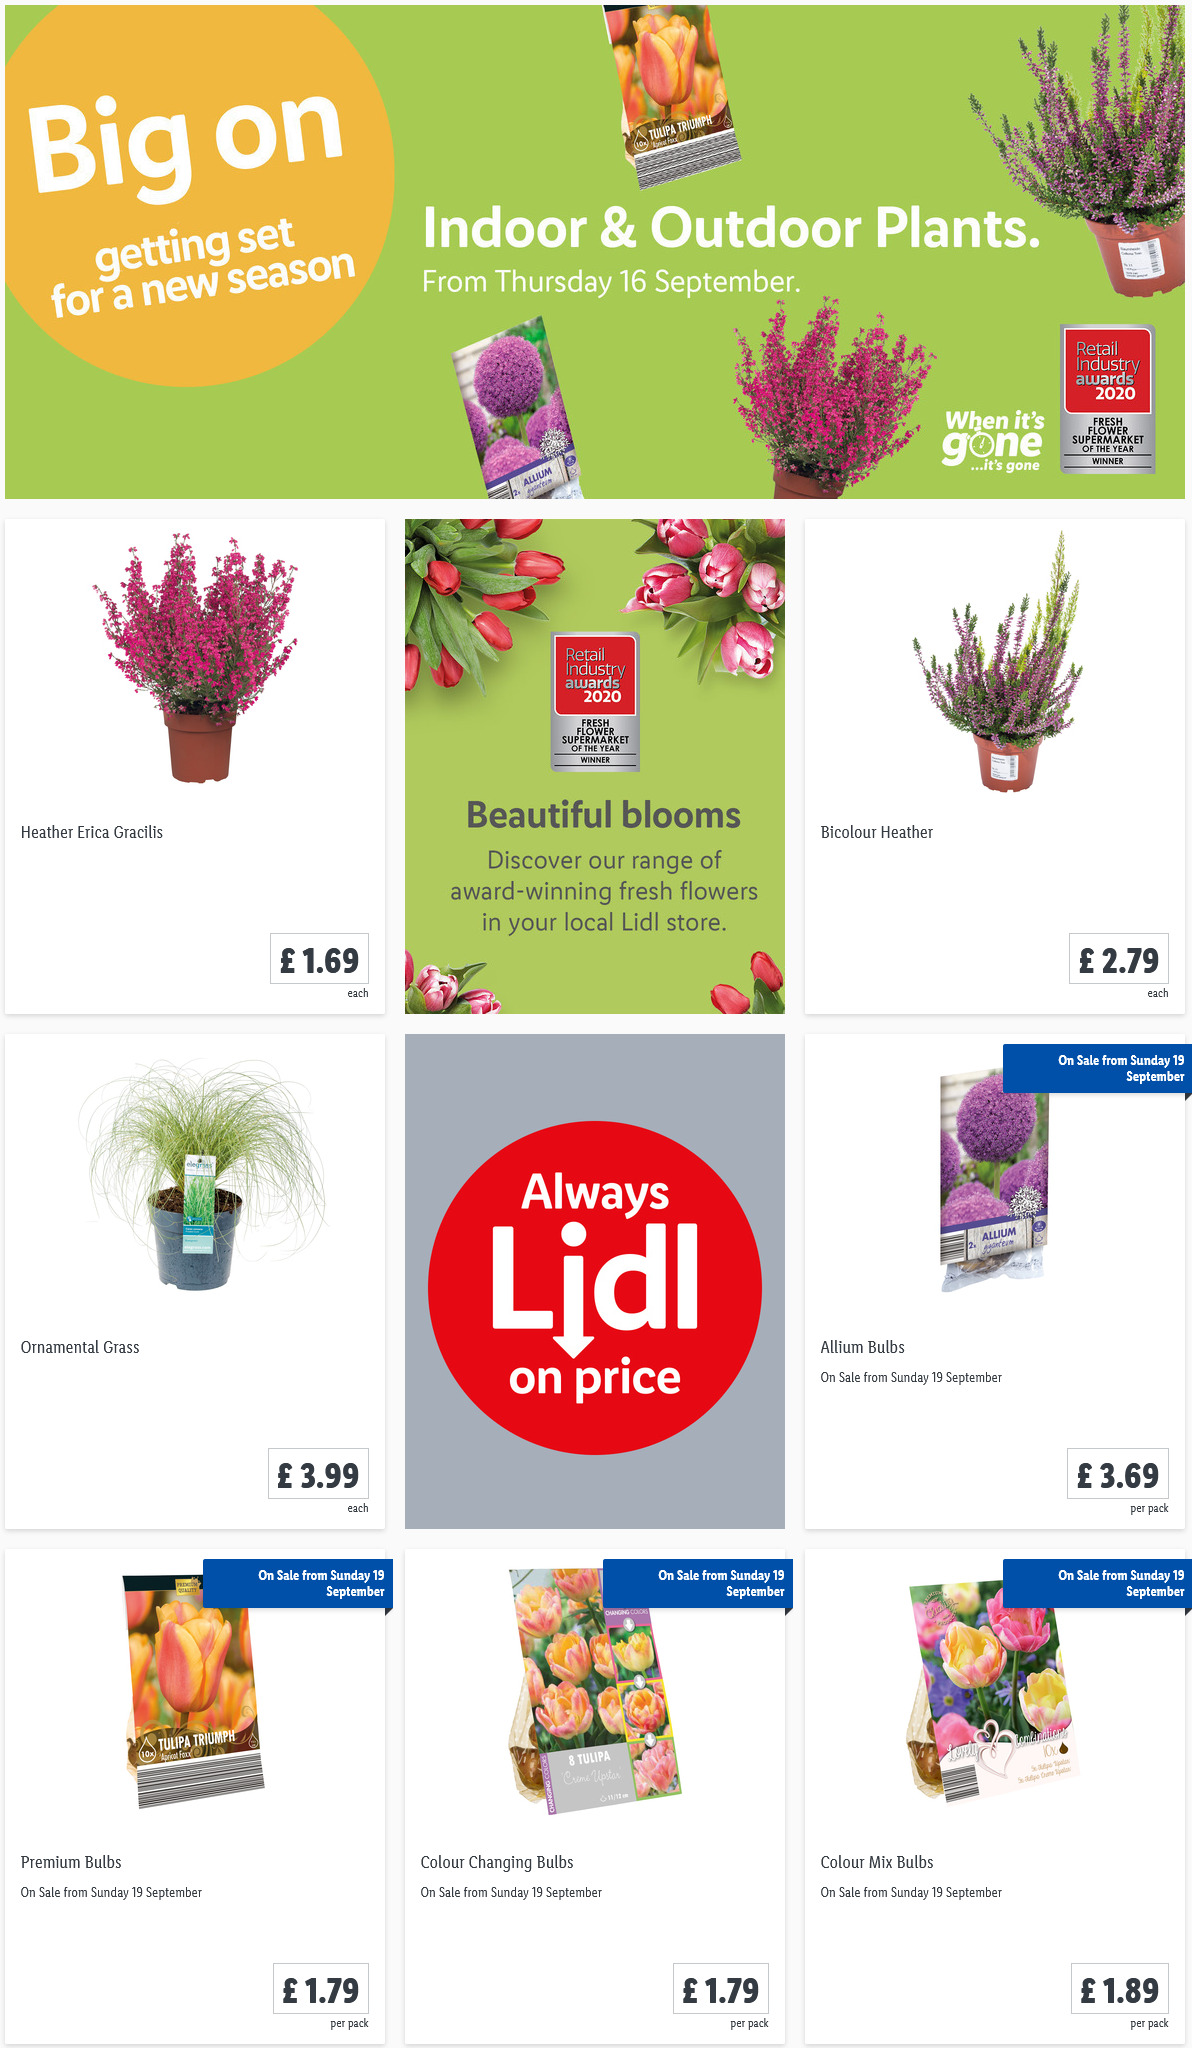 PreviewLIDL Indoor & Outdoor Plants Offers from your garden valid from 16/9/2021